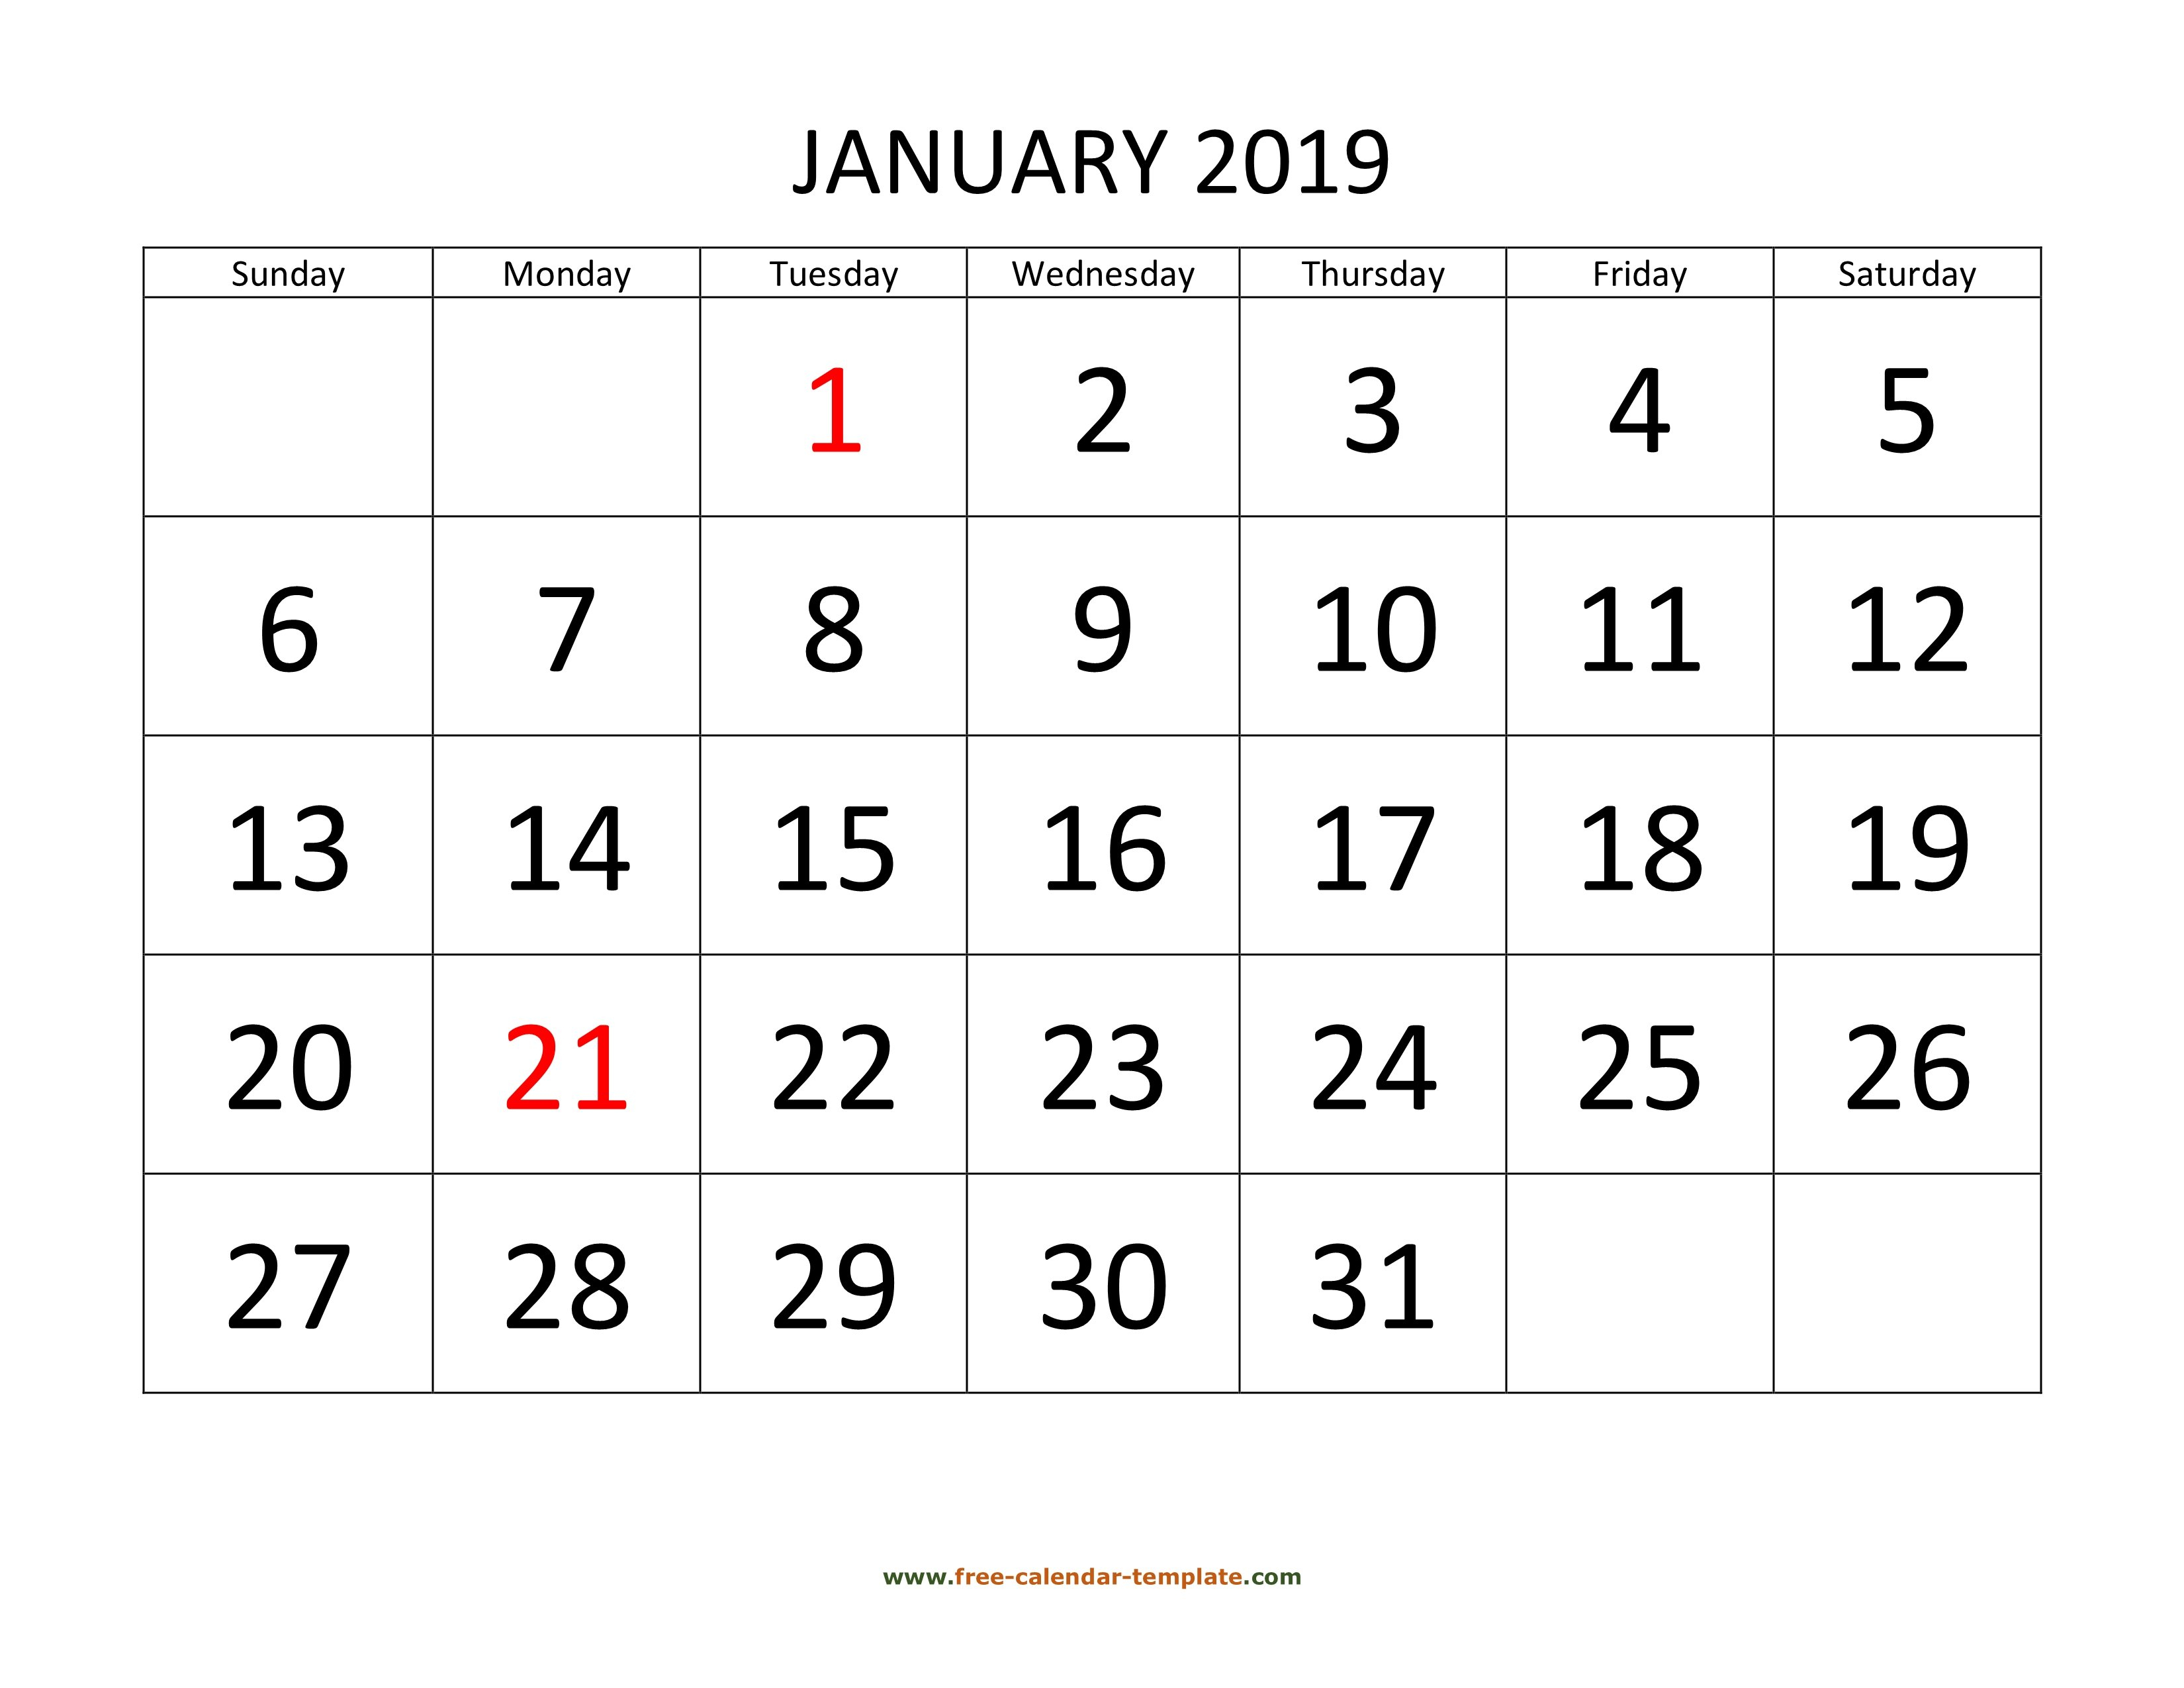 Printable Monthly Calendar 2019 | Free-Calendar-Template Large Printable Numbers For Calendar